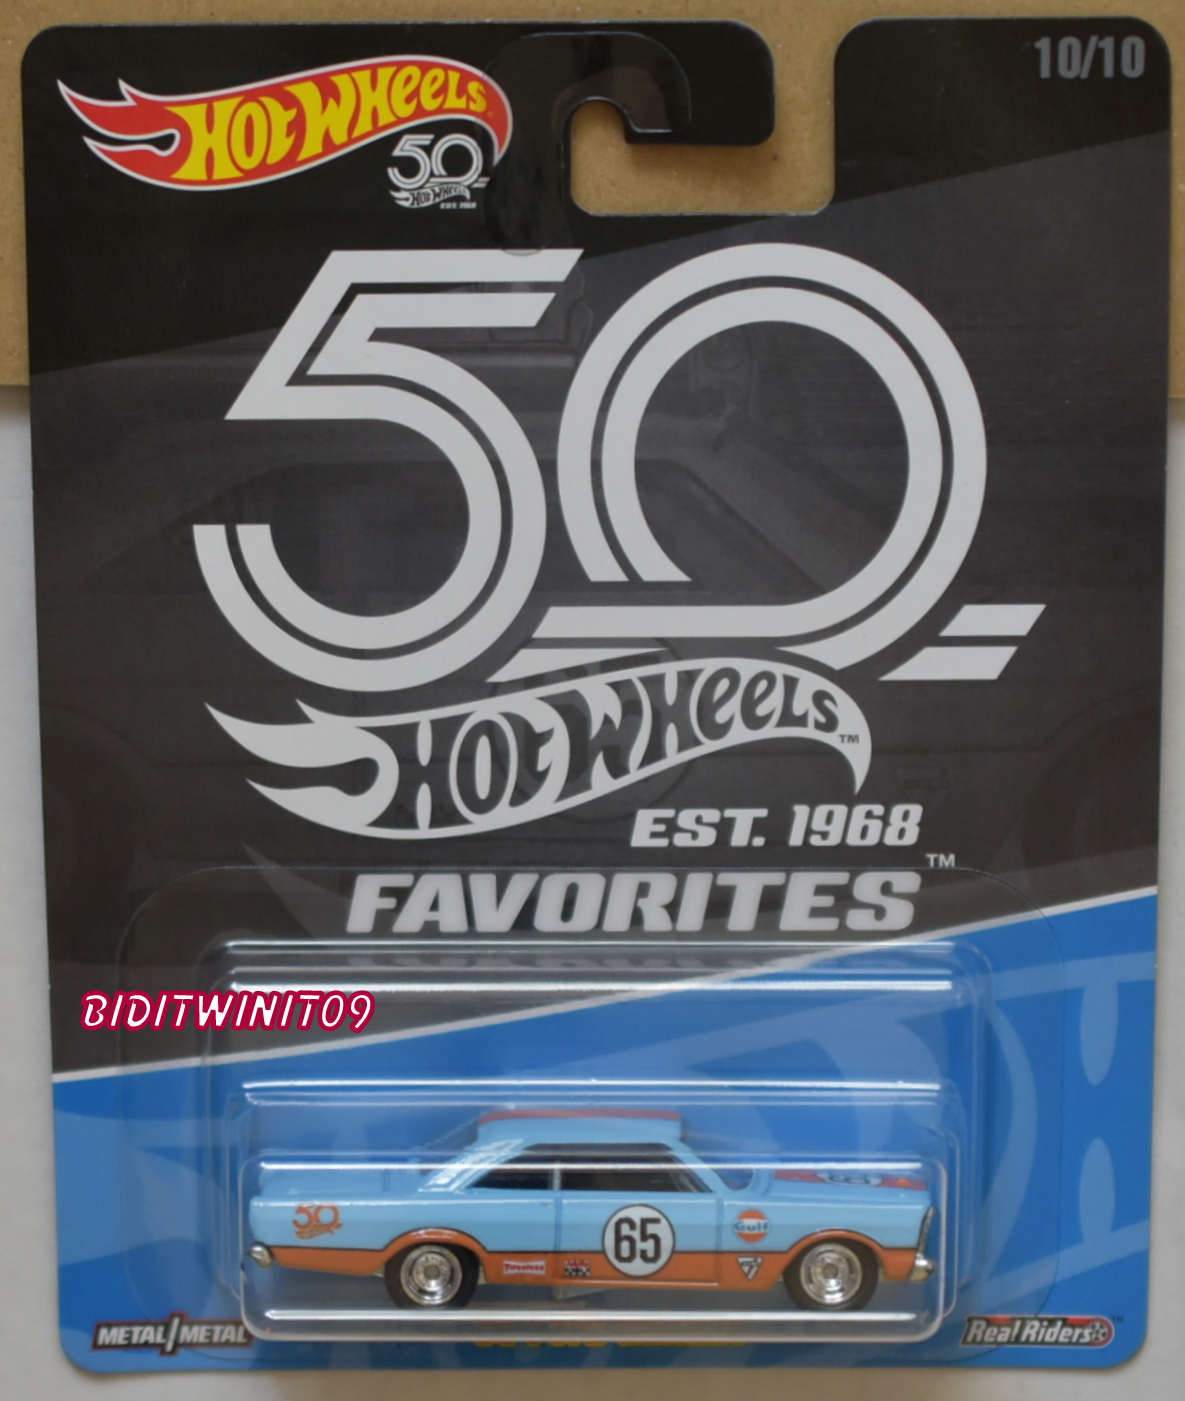 HOT WHEELS 2018 50TH ANNIVERSARY FAVORITES '65 FORD GALAXIE